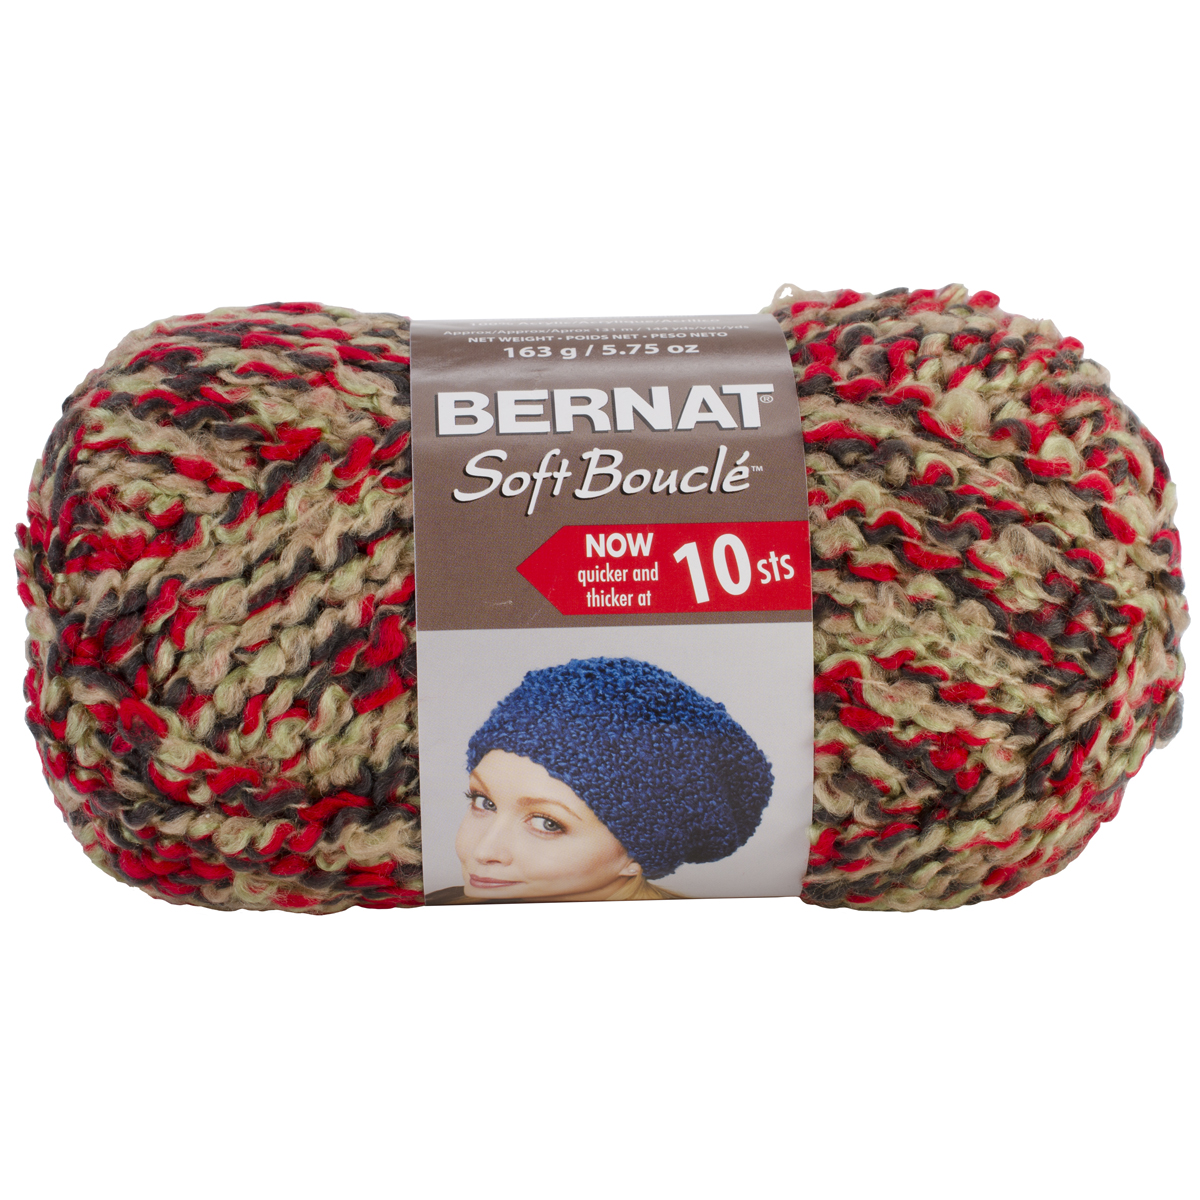 ... Soft Boucle Yarn ? Bernat Soft Boucle Yarn Super Bulky Chili Peppers